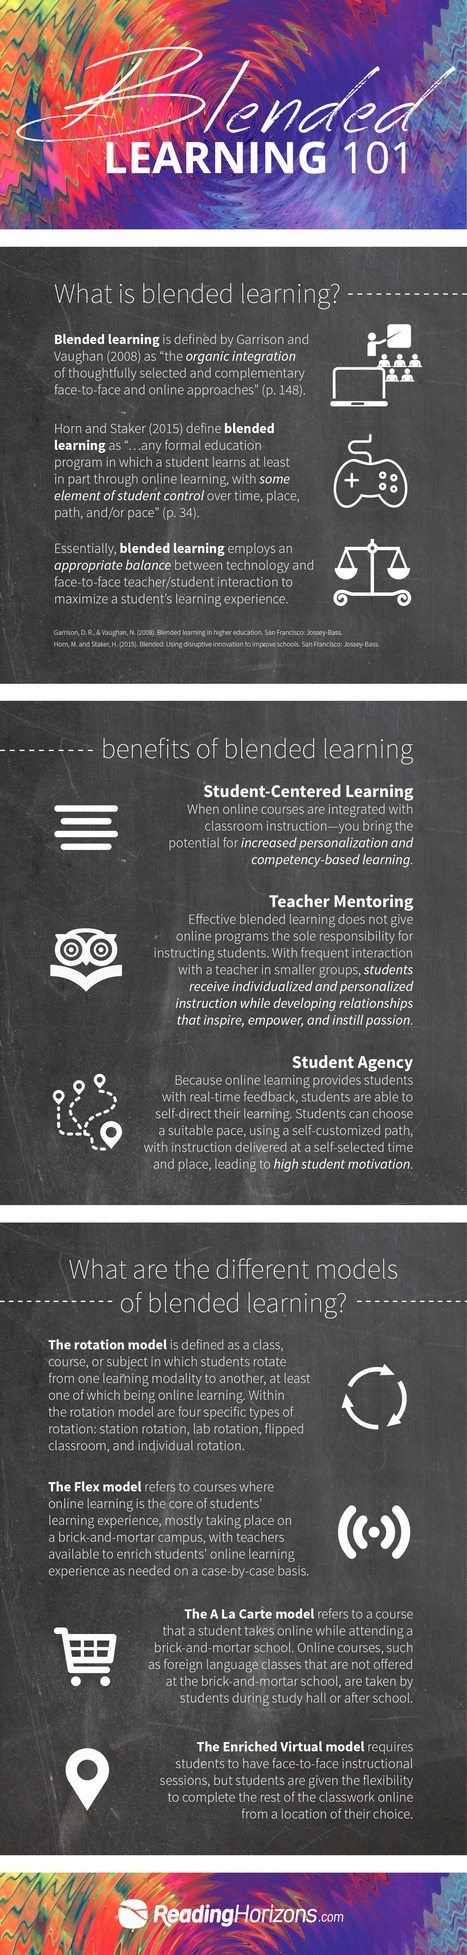 Blended Learning 101 Infographic - e-Learning Infographics | blended learning | Scoop.it